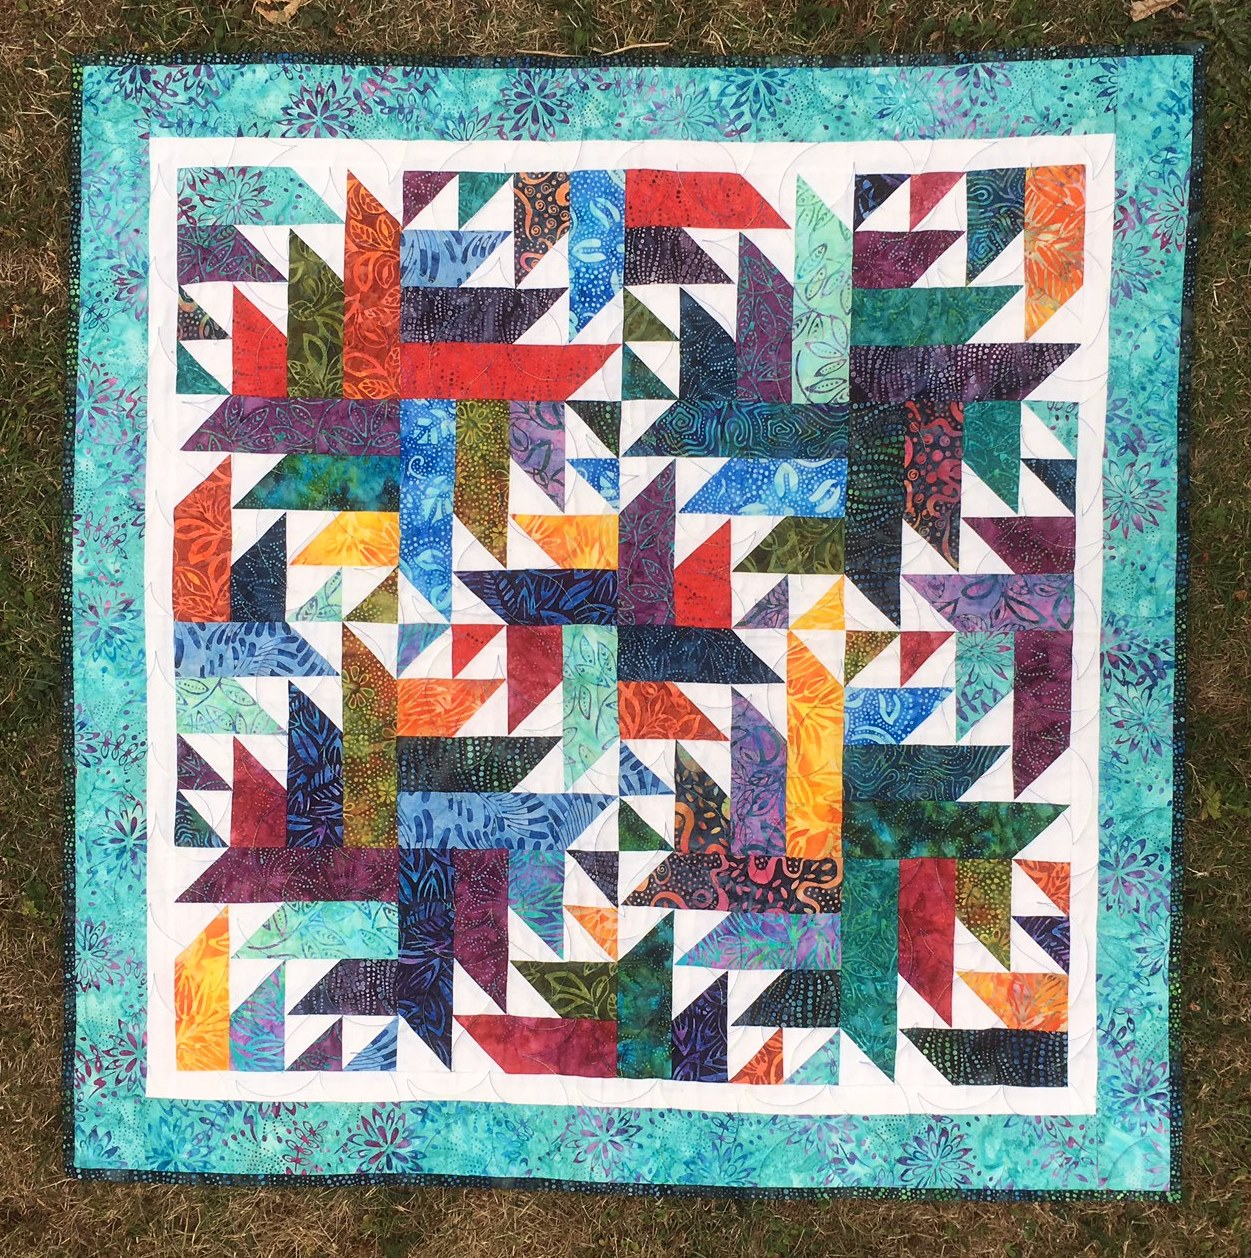 Janet quilt 1 cropped.jpg